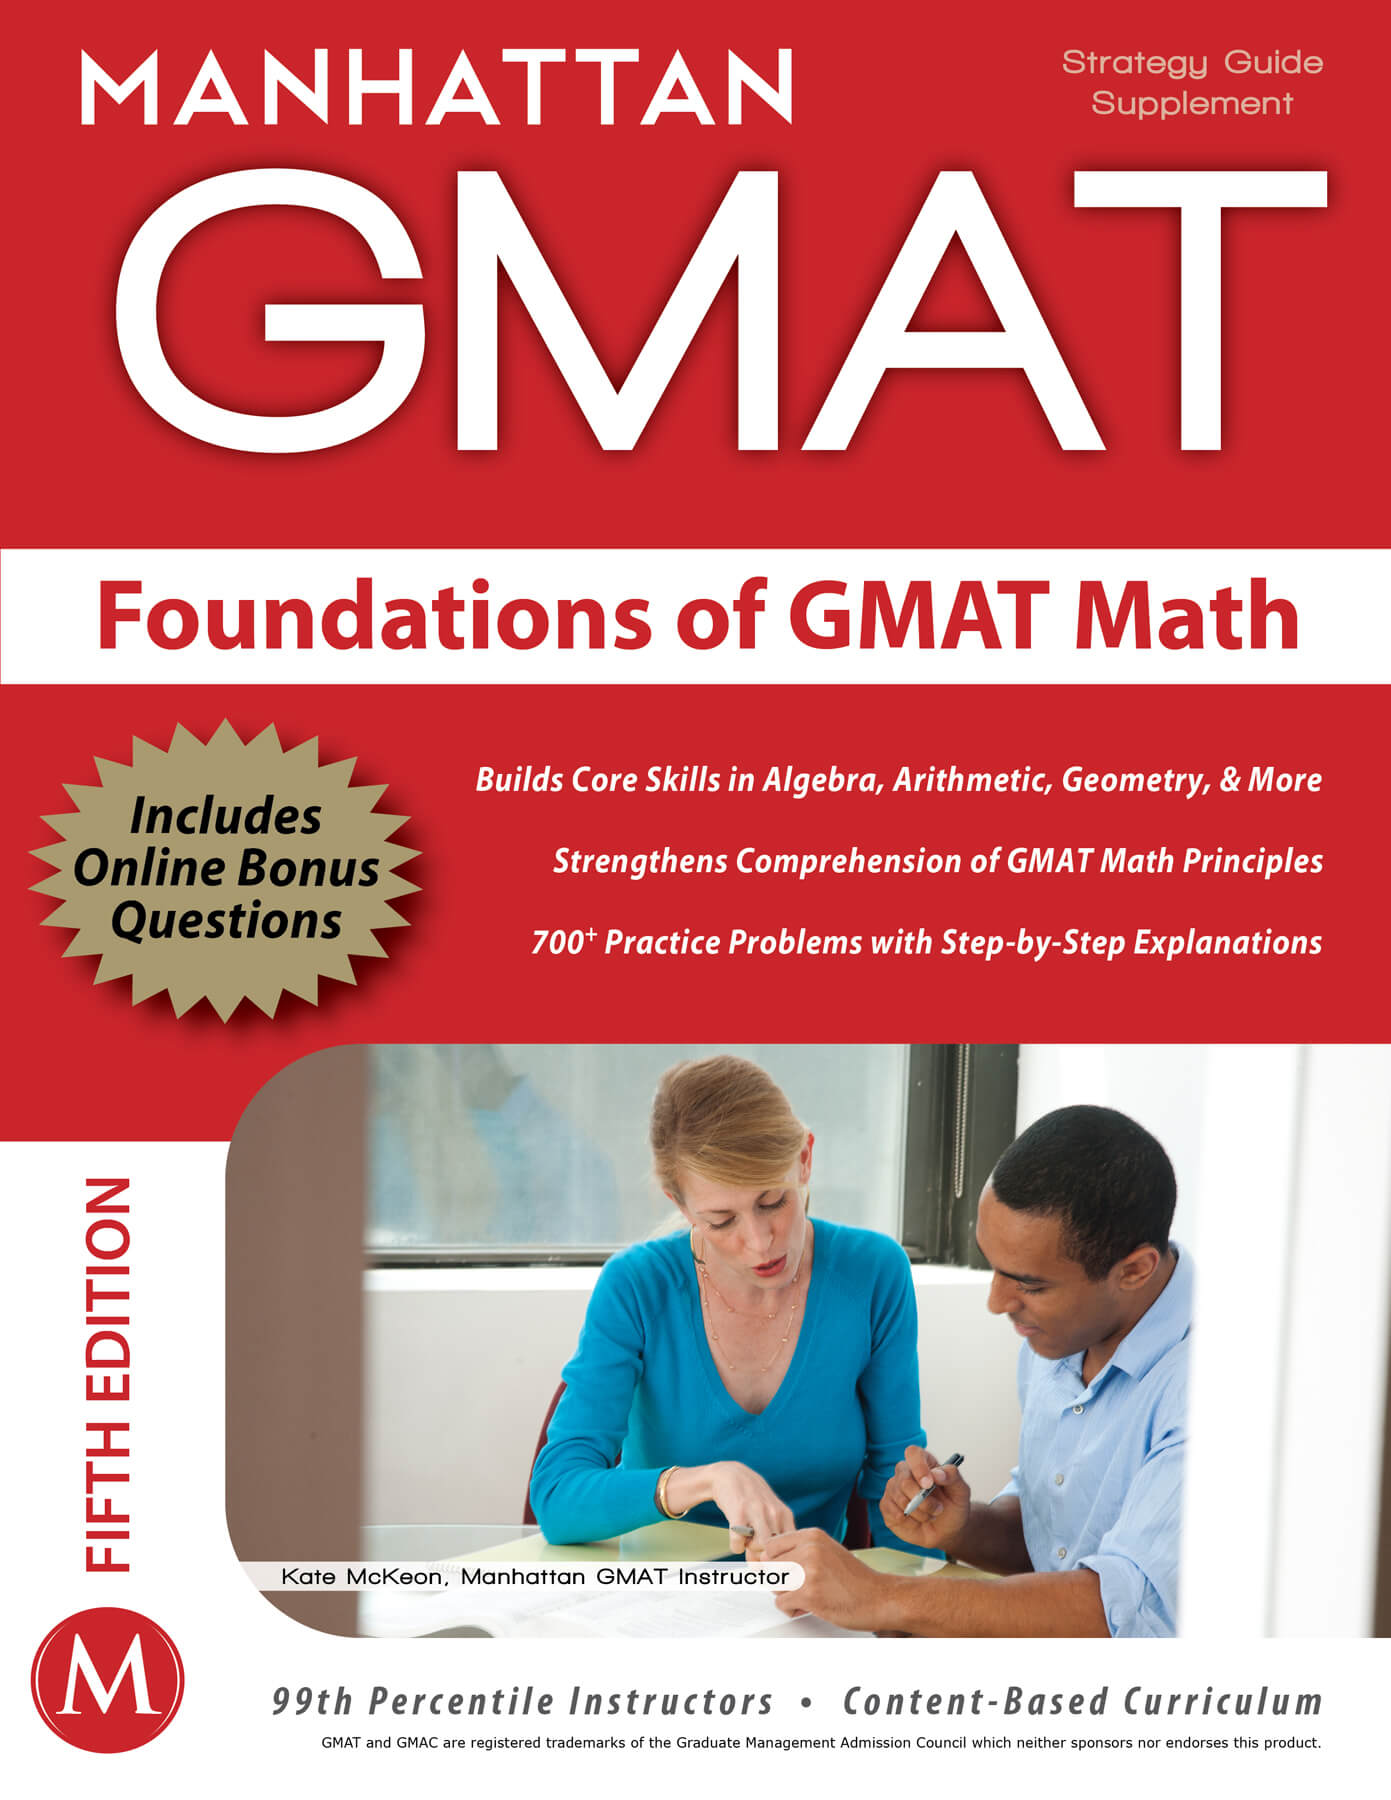 Foundations of GMAT Math cover